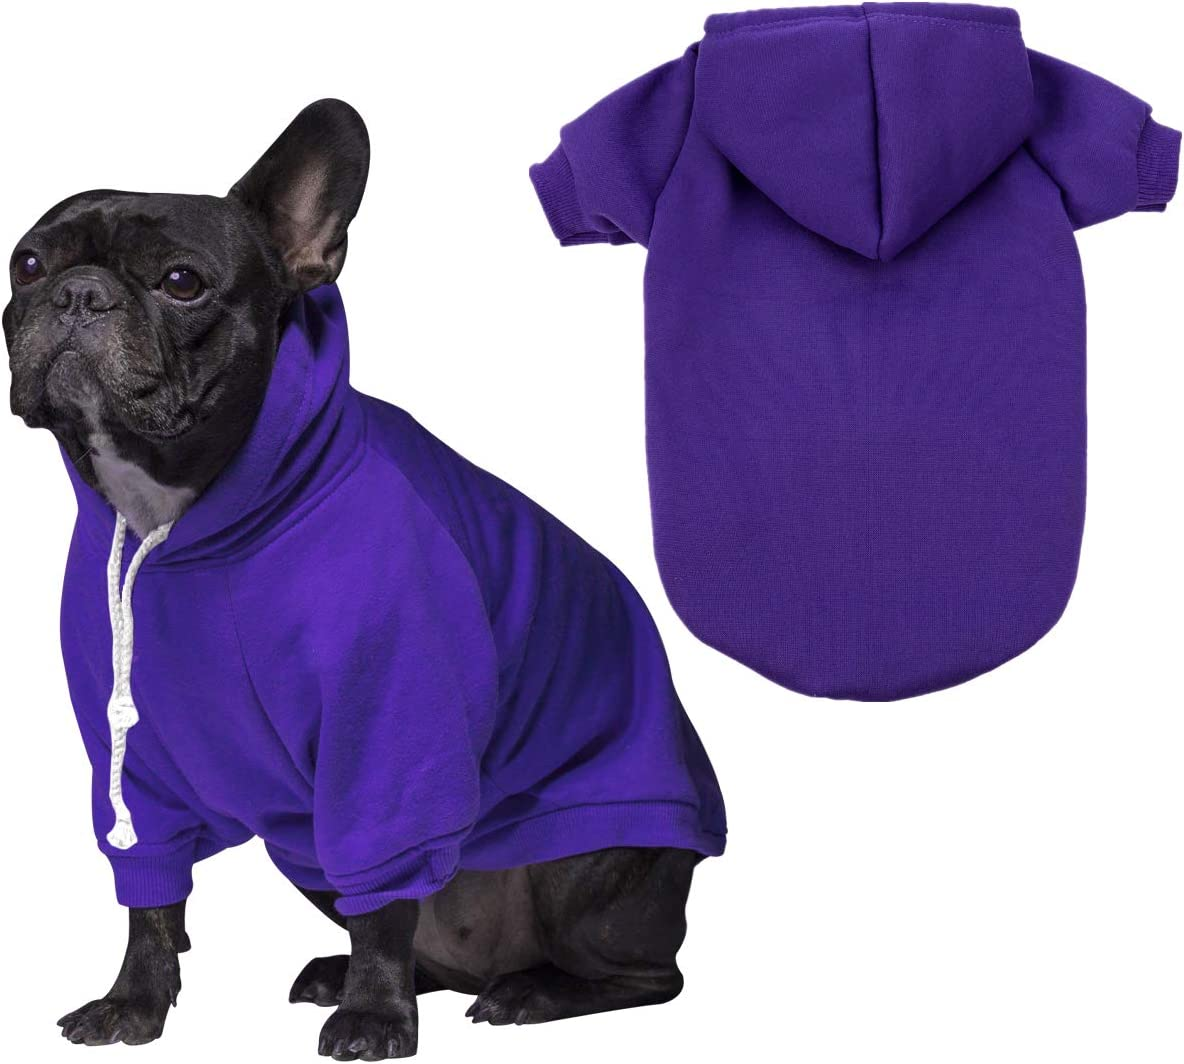 Blank Dog Sweatshirt Pet Ranking TOP19 Hoodie Clothes supreme Dogs for Doggie